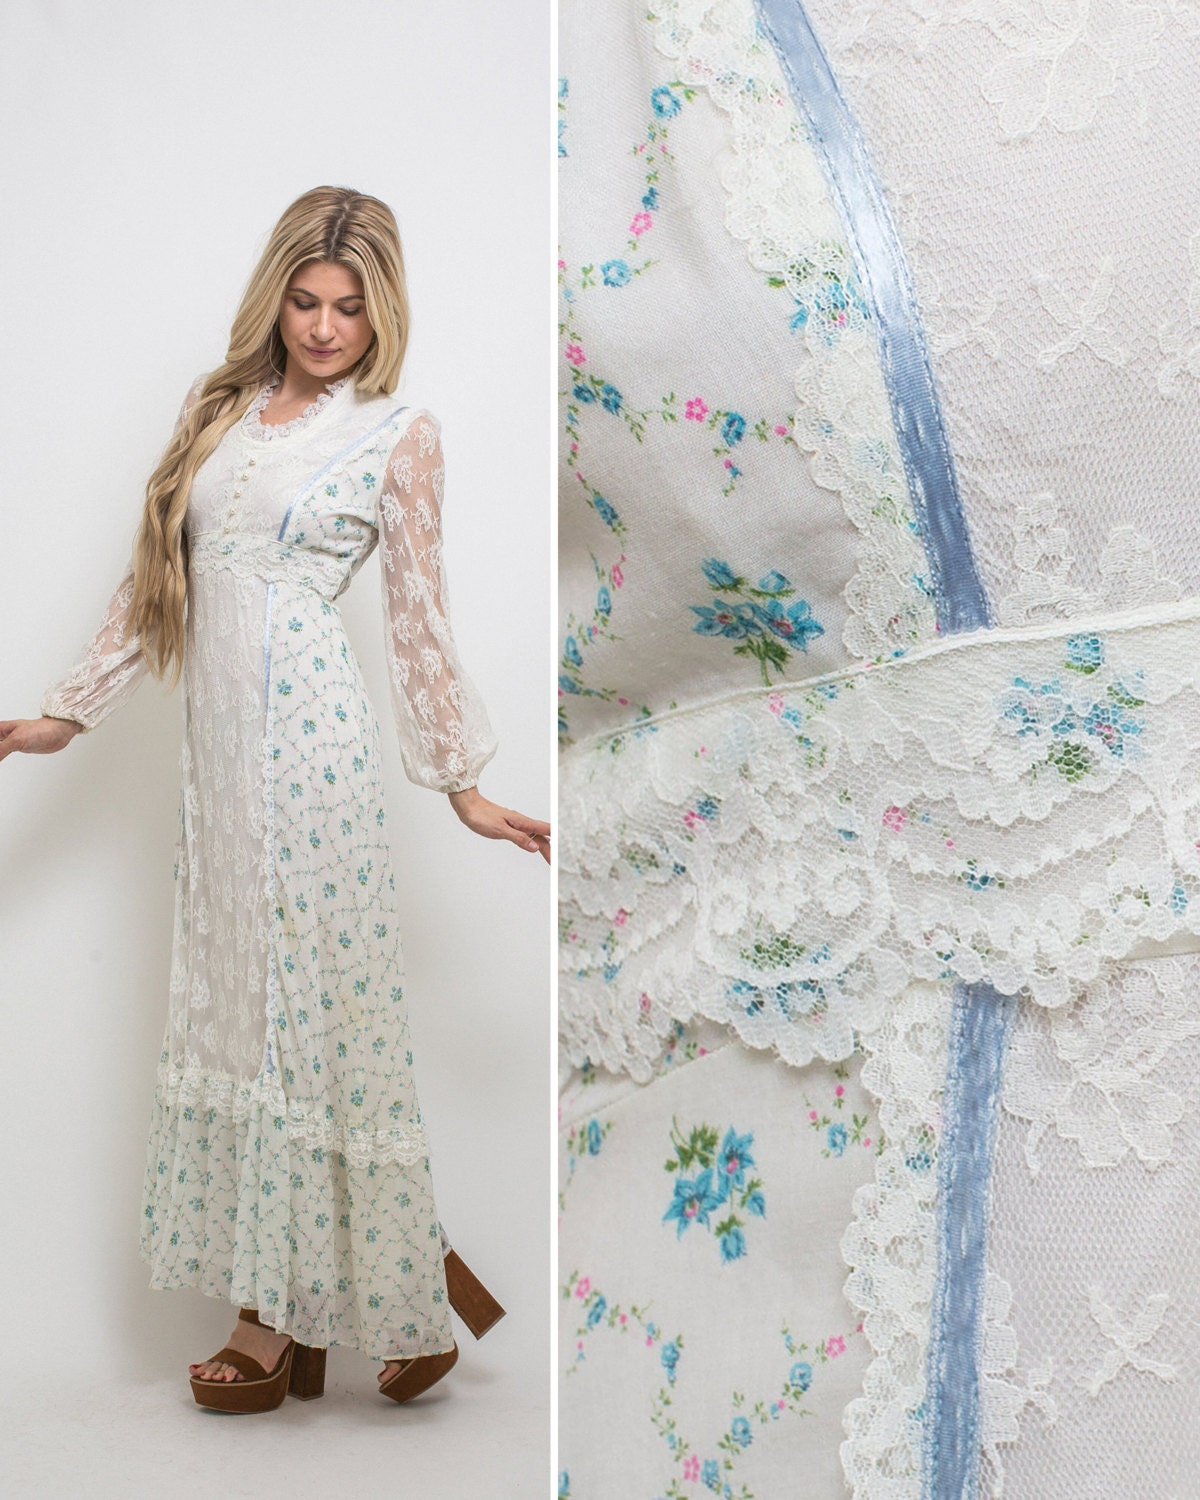 Boho Wedding Dress Size 18 : Hippie boho dress vintage floral s wedding prairie